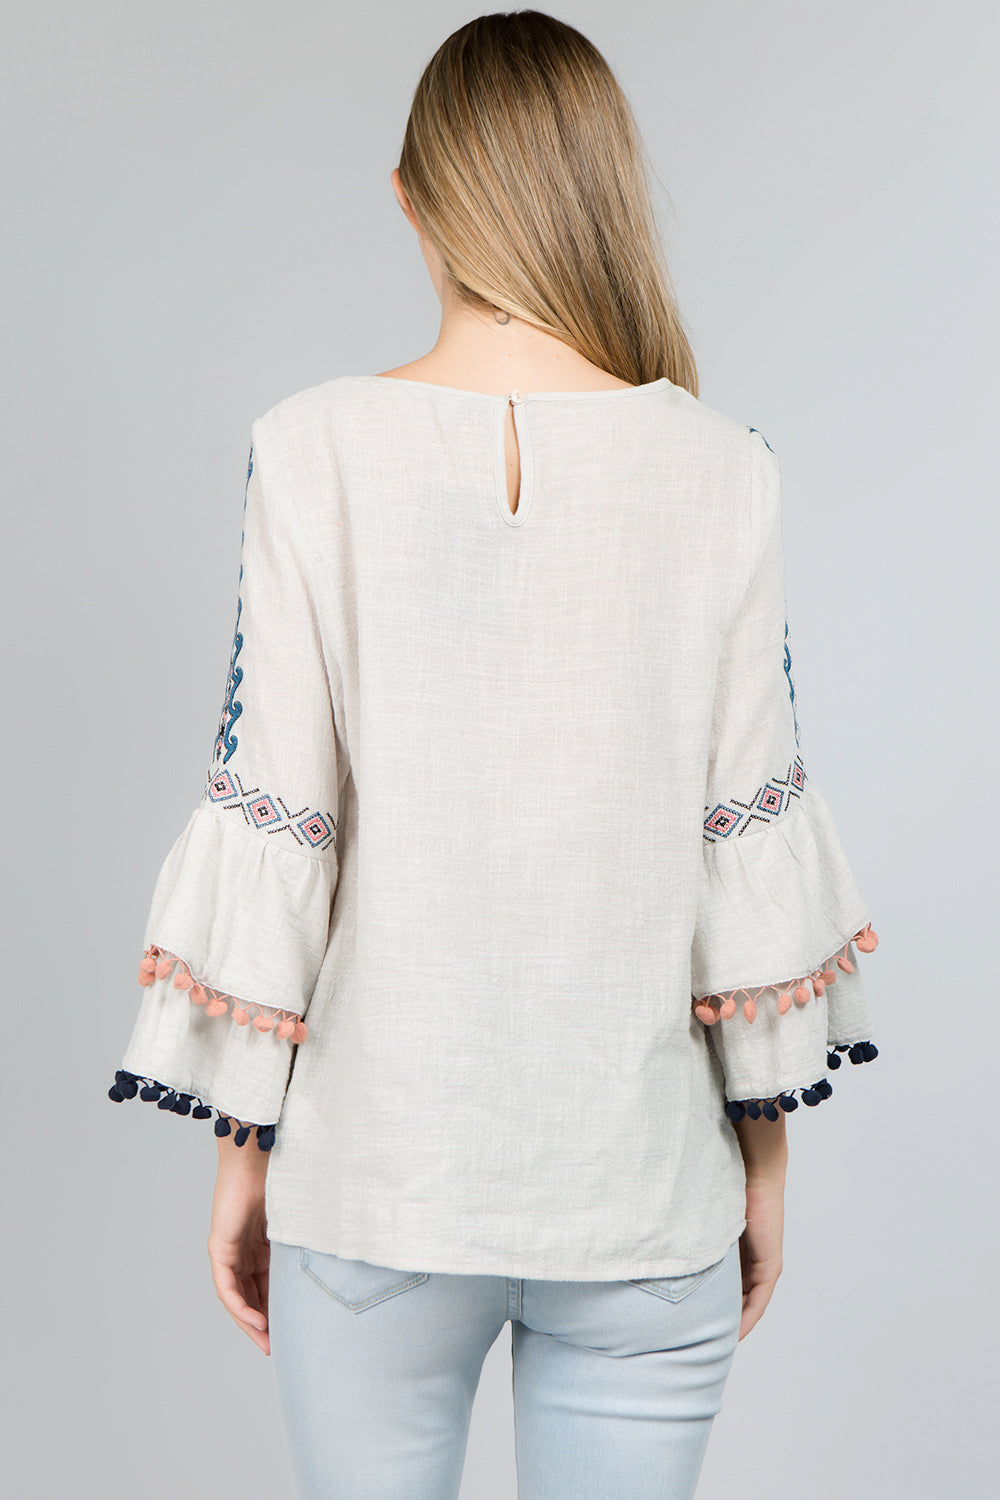 T2429 Pompom  Embroidery Top